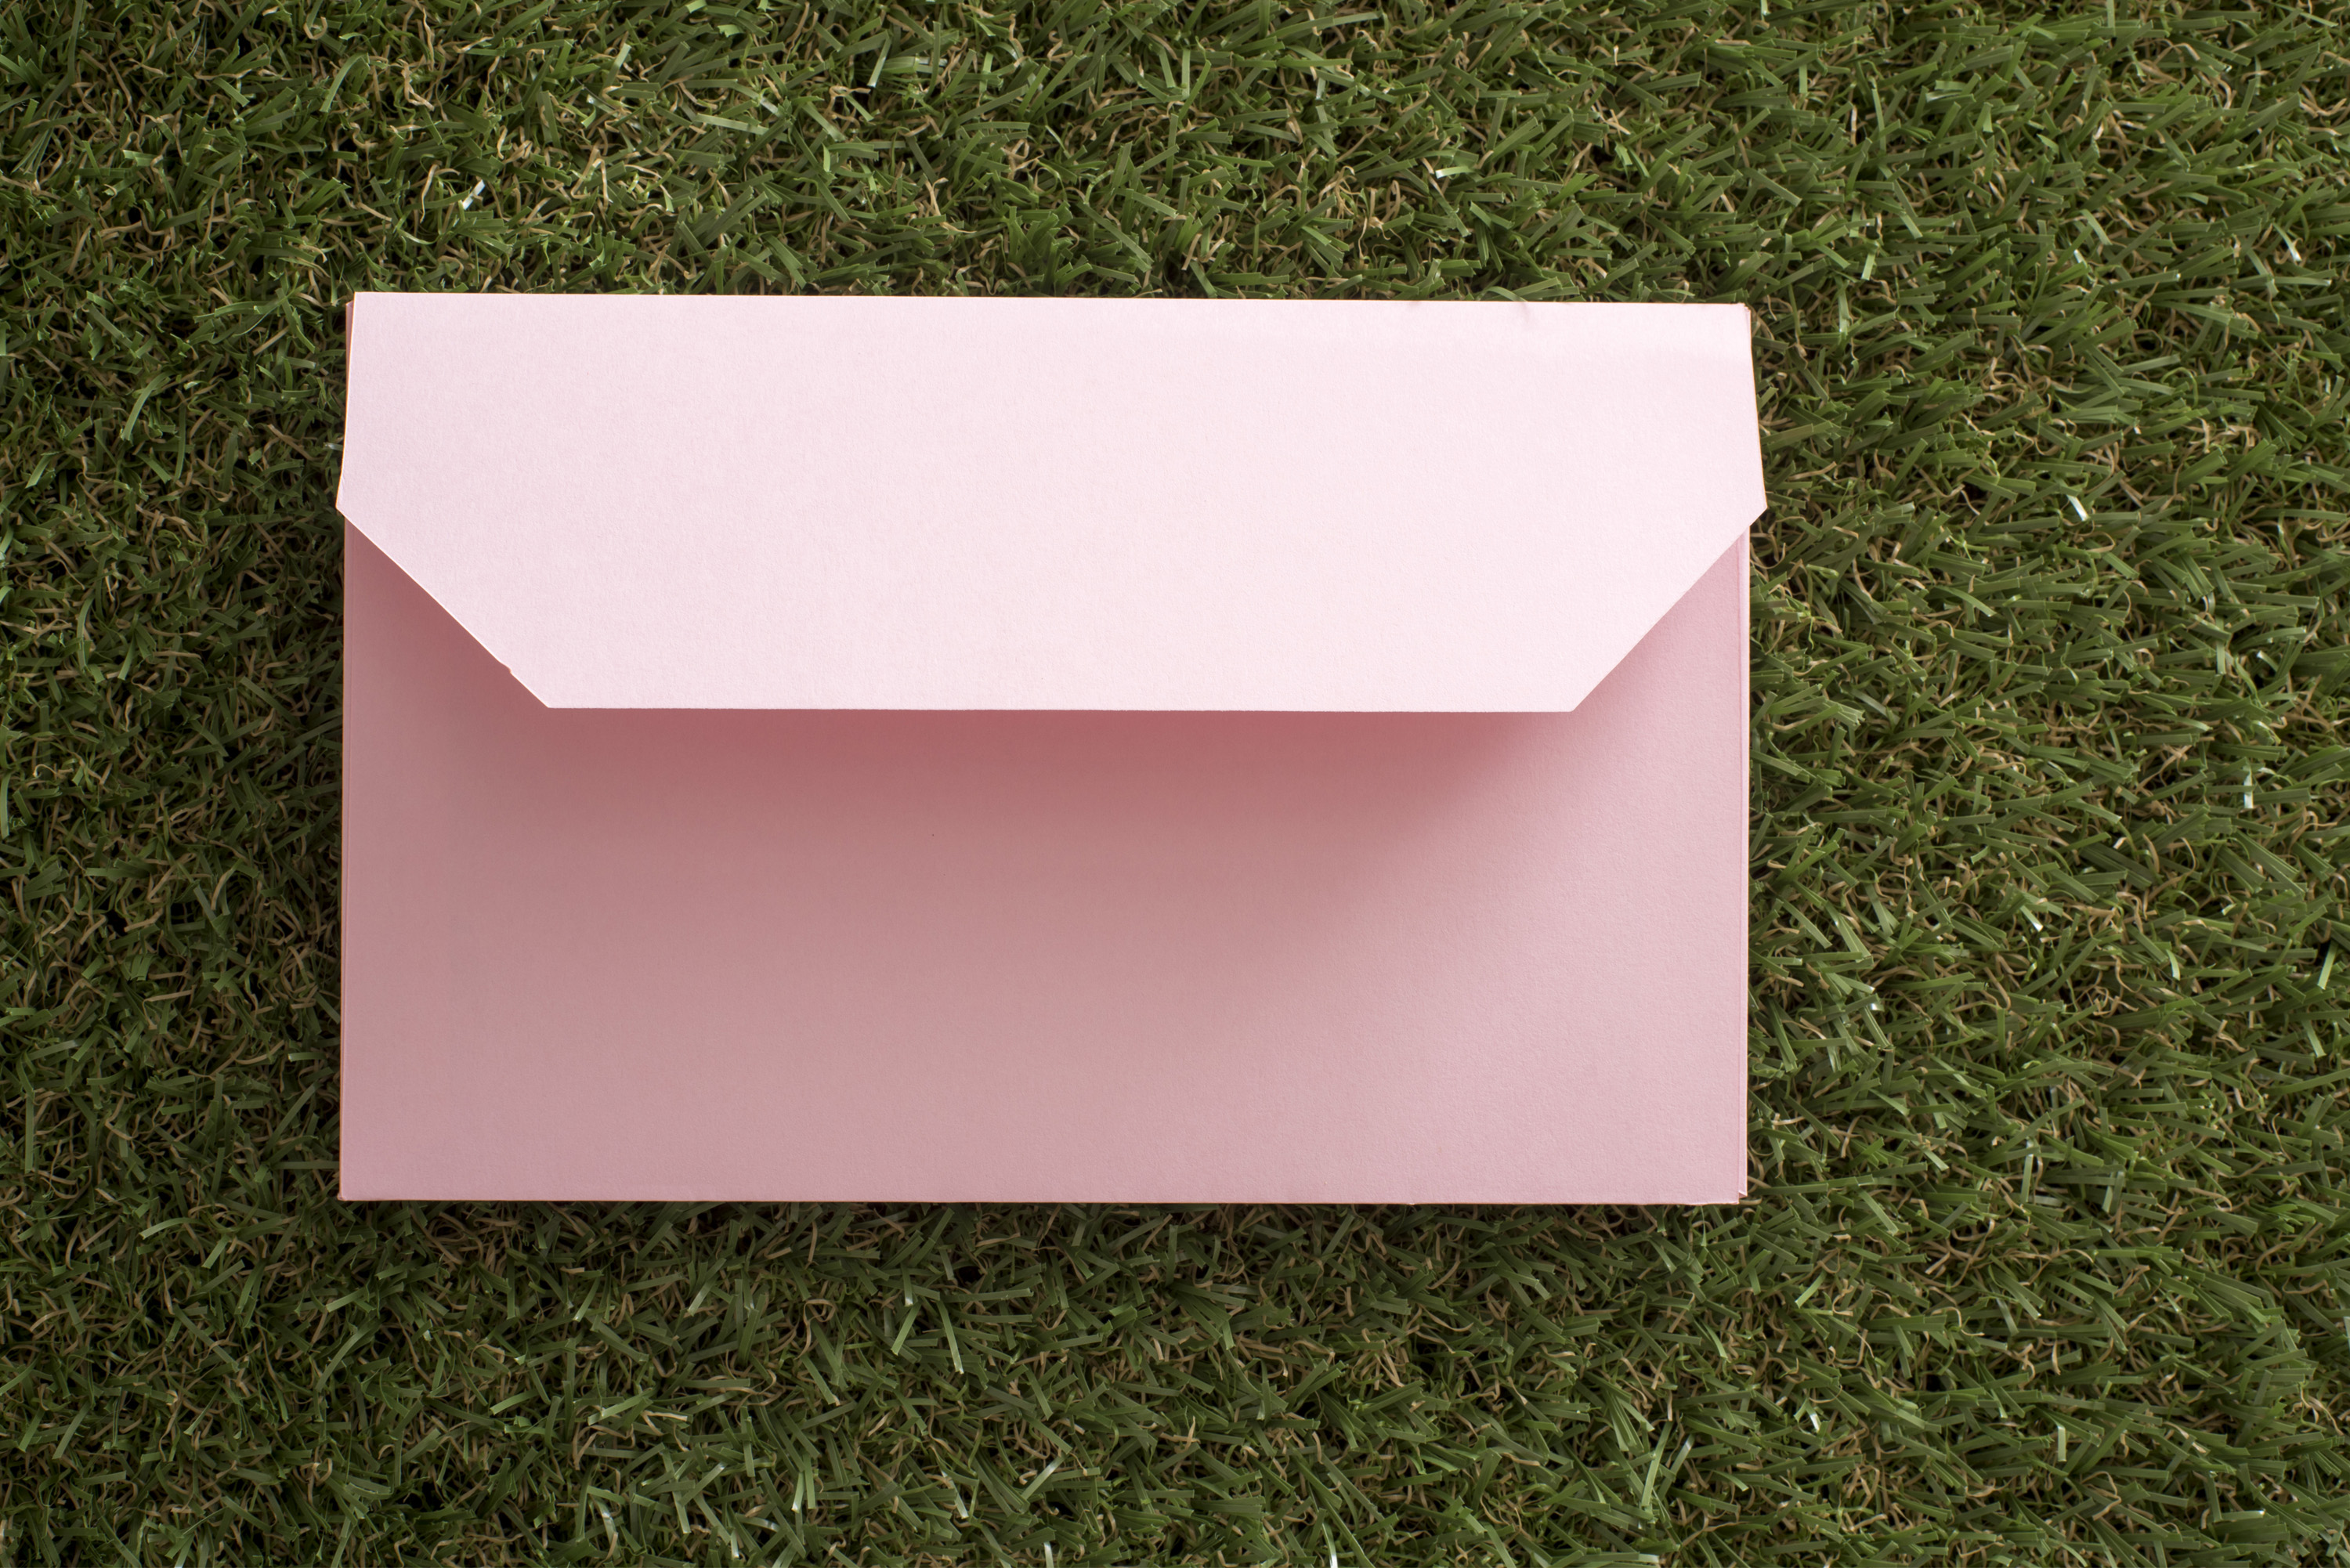 opened_envelope.jpg - Single pastel pink envelope opened face down on green grass conceptual of Easter spring greetings and wishes